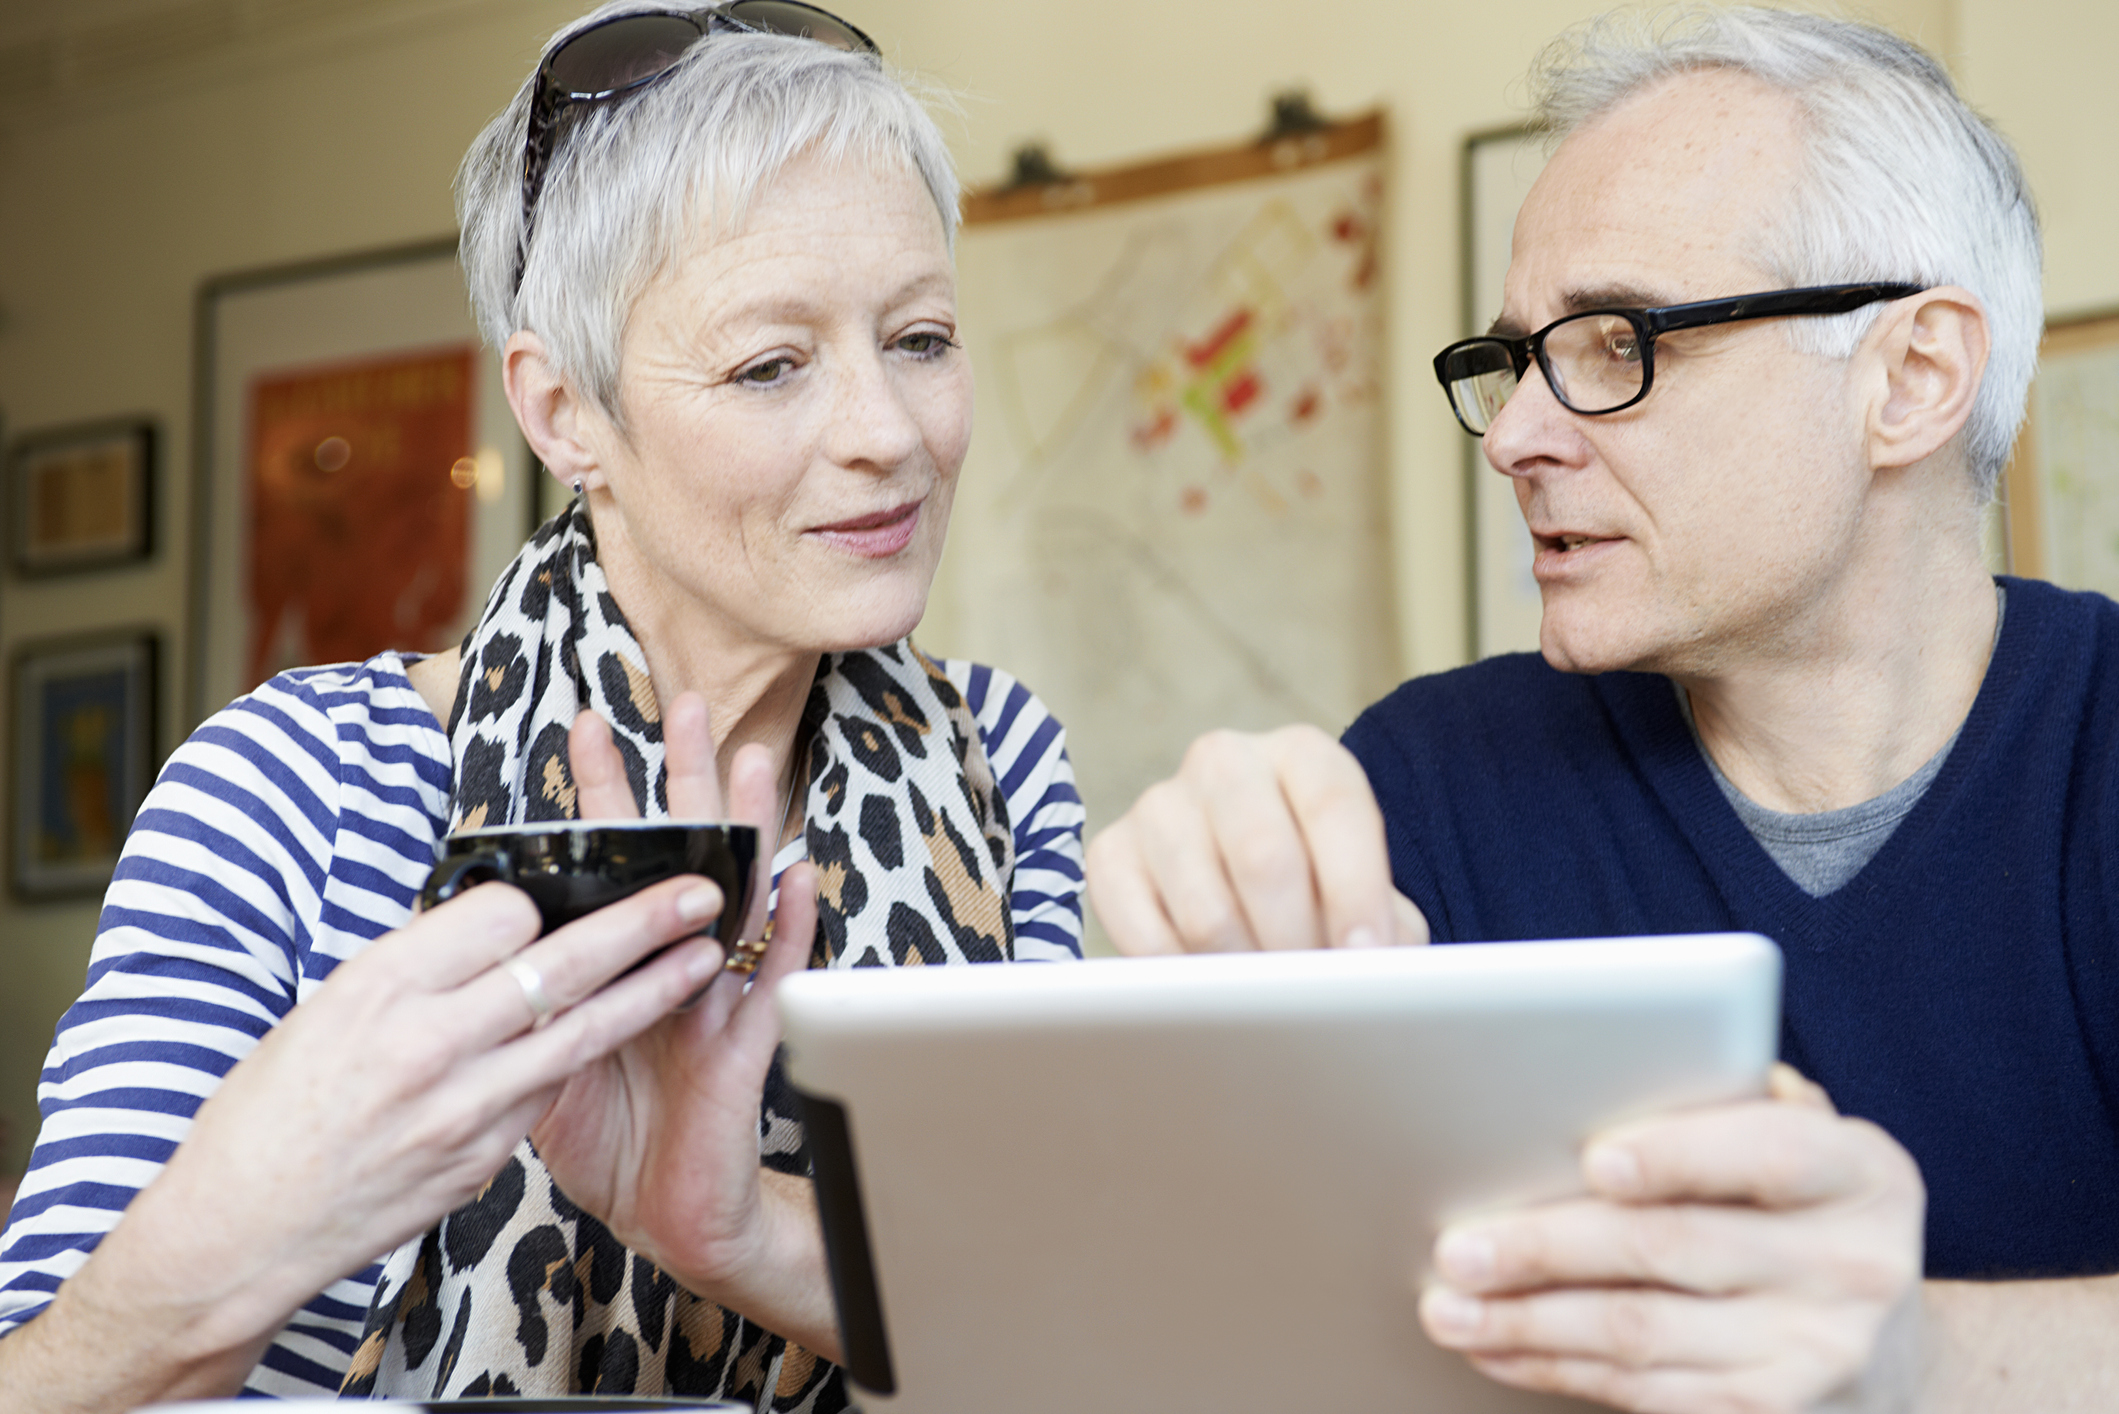 An older couple studies a tablet while searching for information.